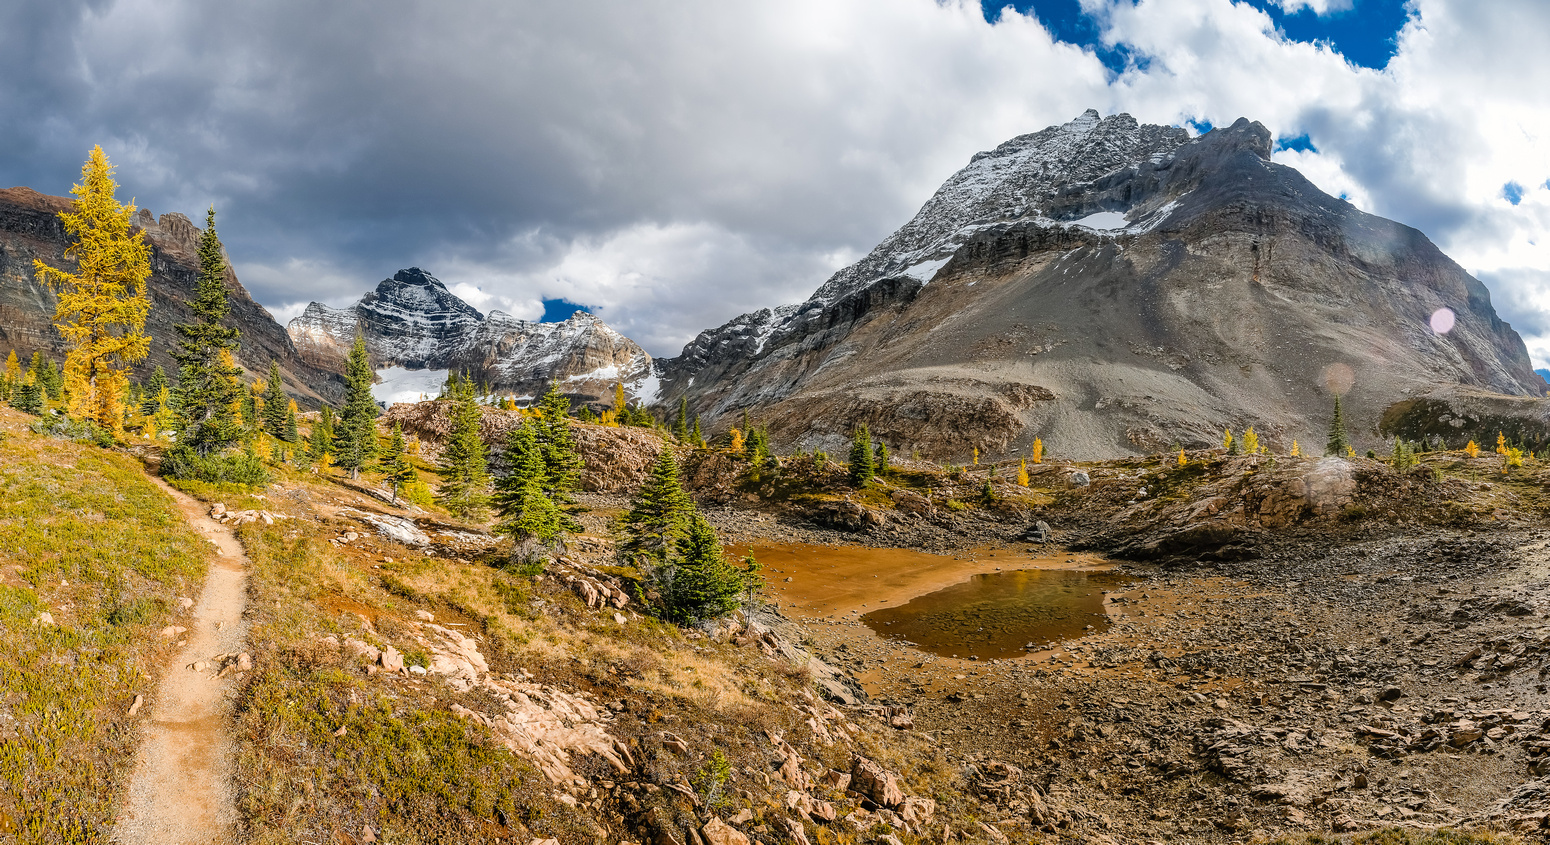 Amazing views of Biddle and Park, looking pretty big from the Lower McArthur Pass route.